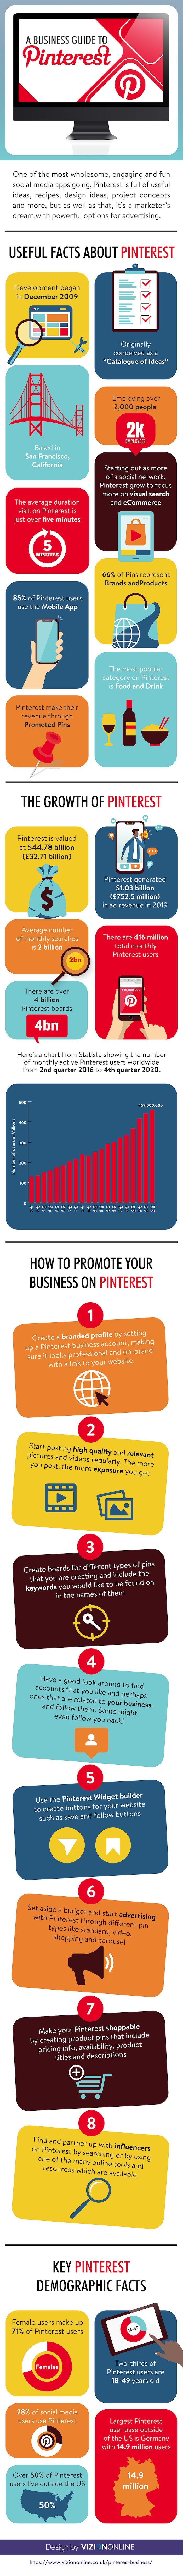 A business guide to Pinterest infographic